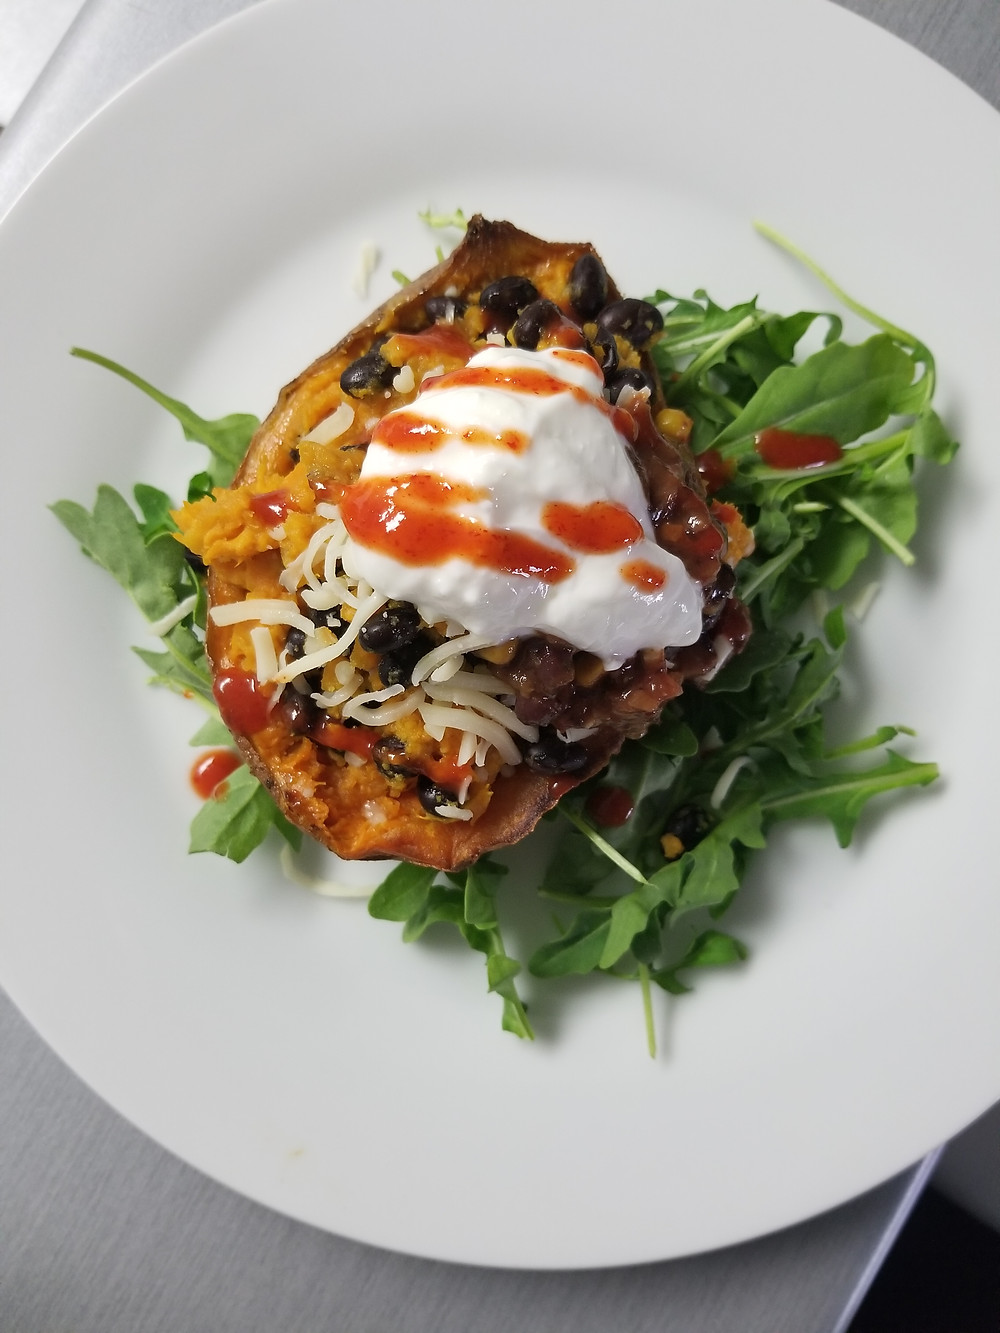 Black bean stuffed sweet potato, vegetarian entree, meatless meal, mexican